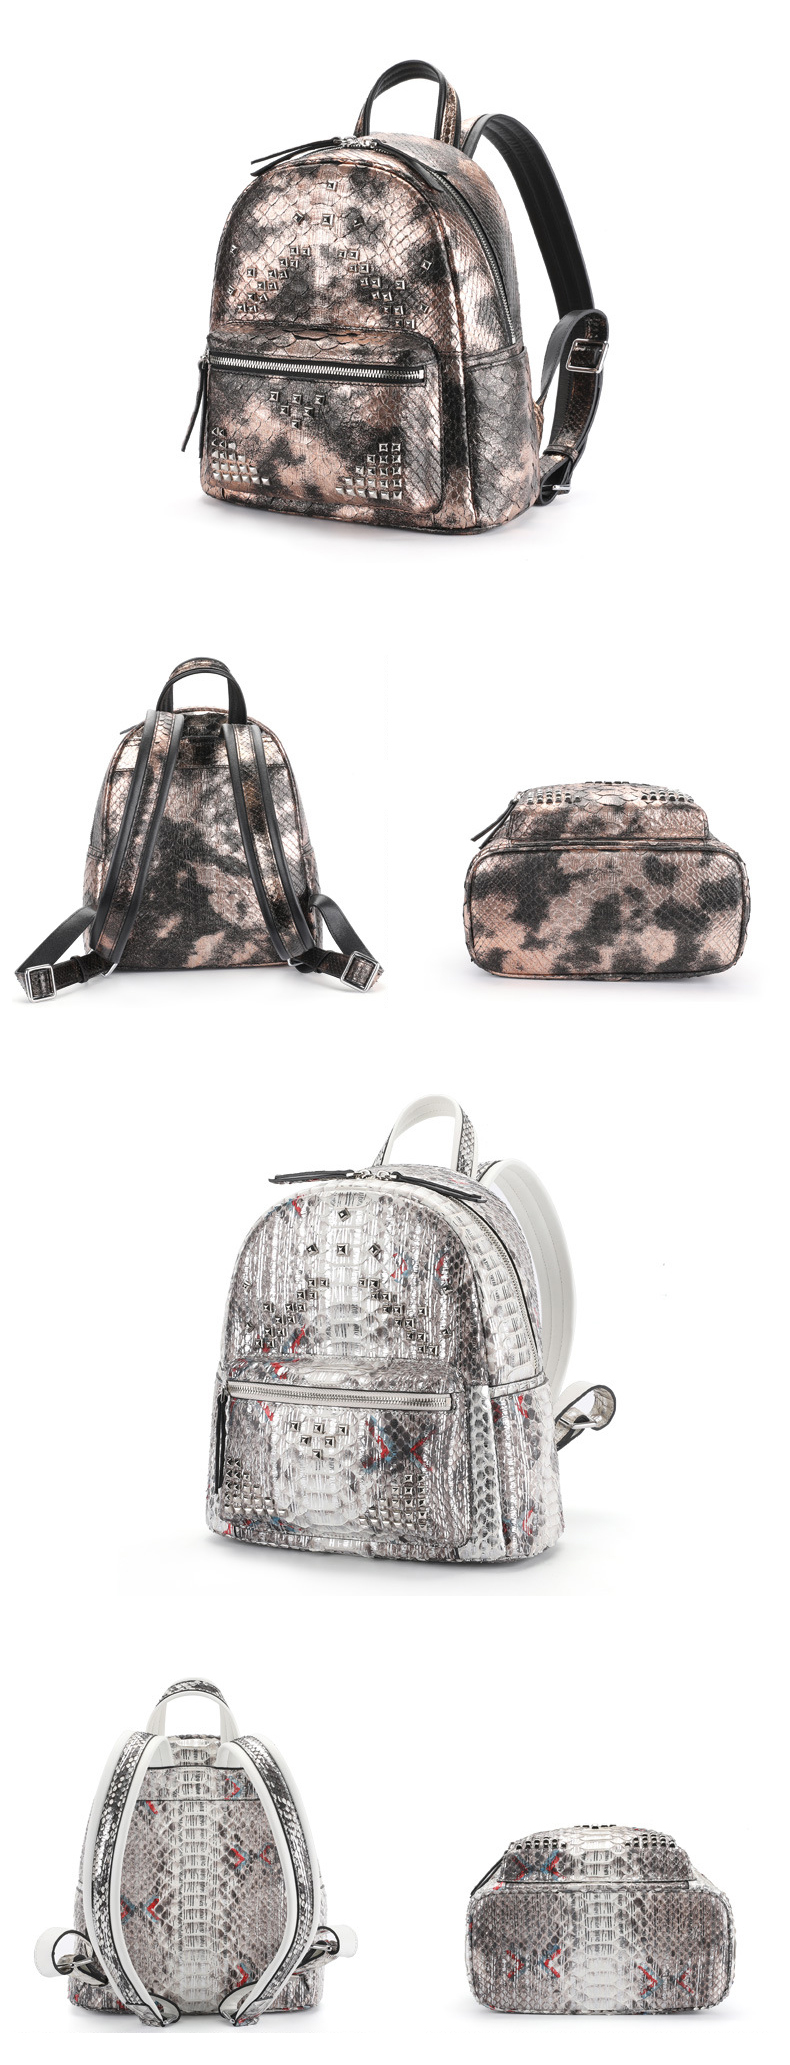 laether backpacks